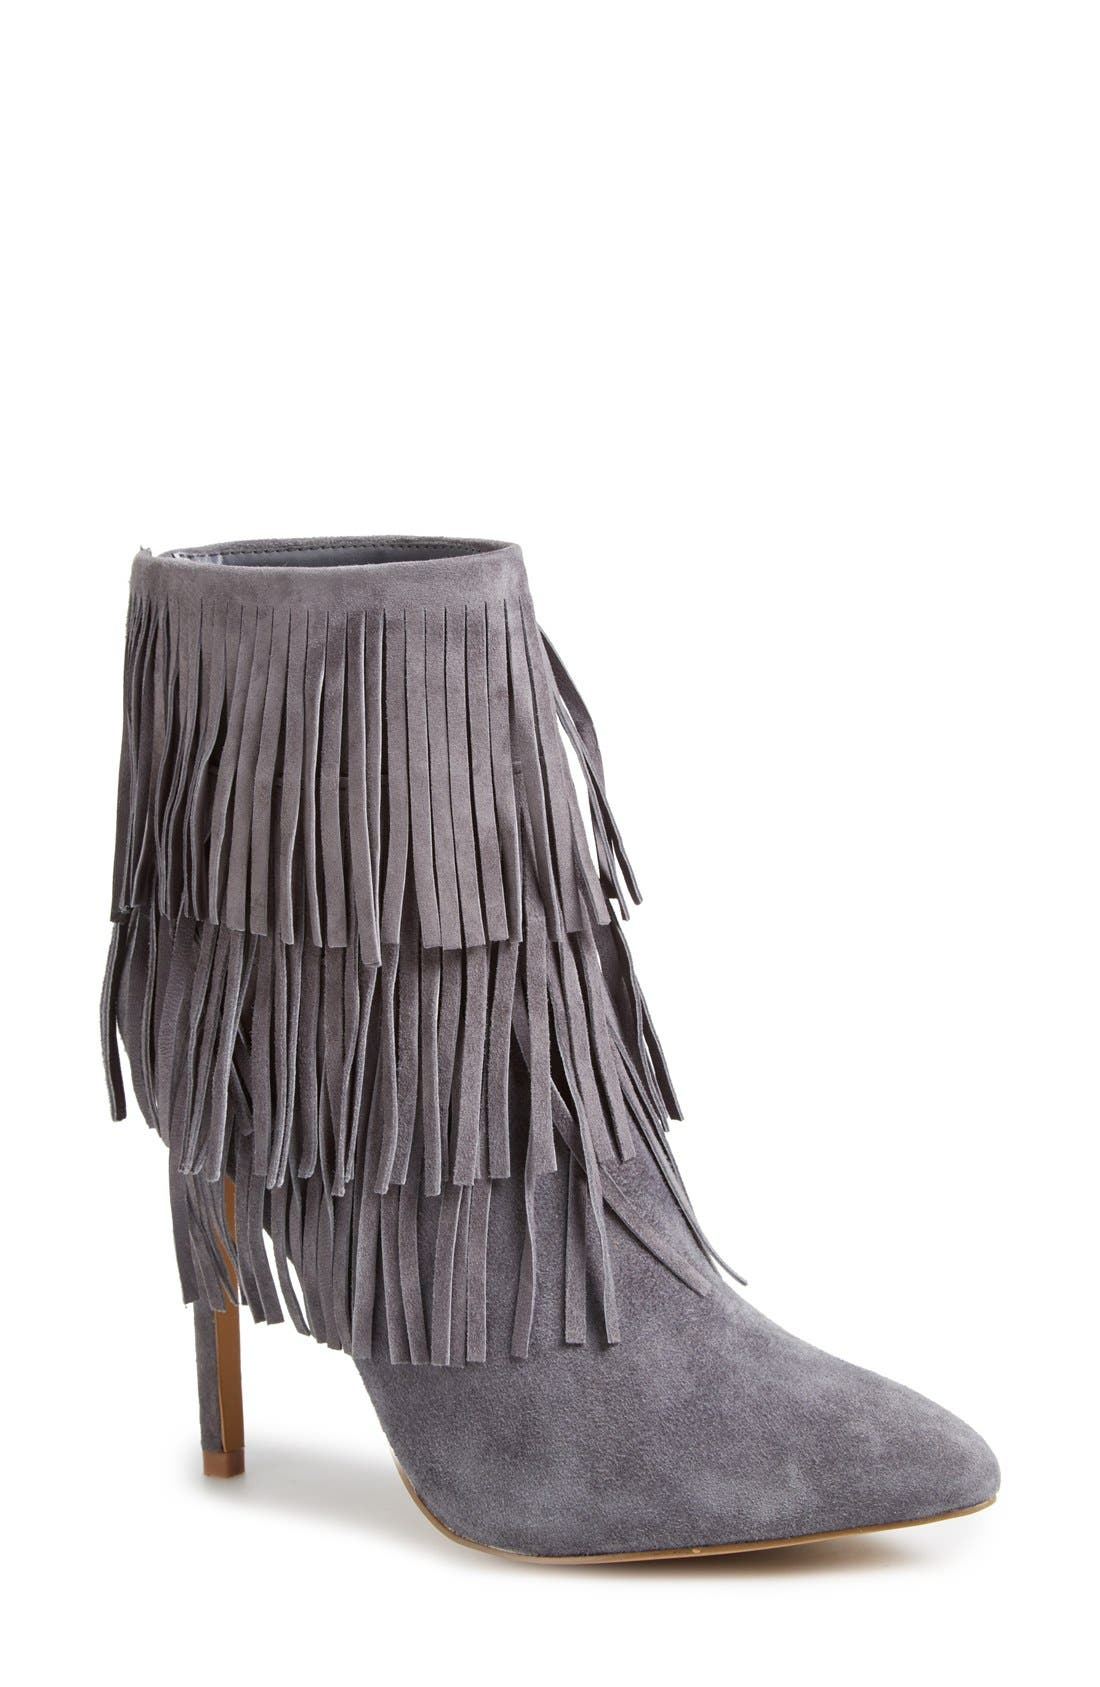 Alternate Image 1 Selected - Steve Madden 'Flapper' Boot (Women)